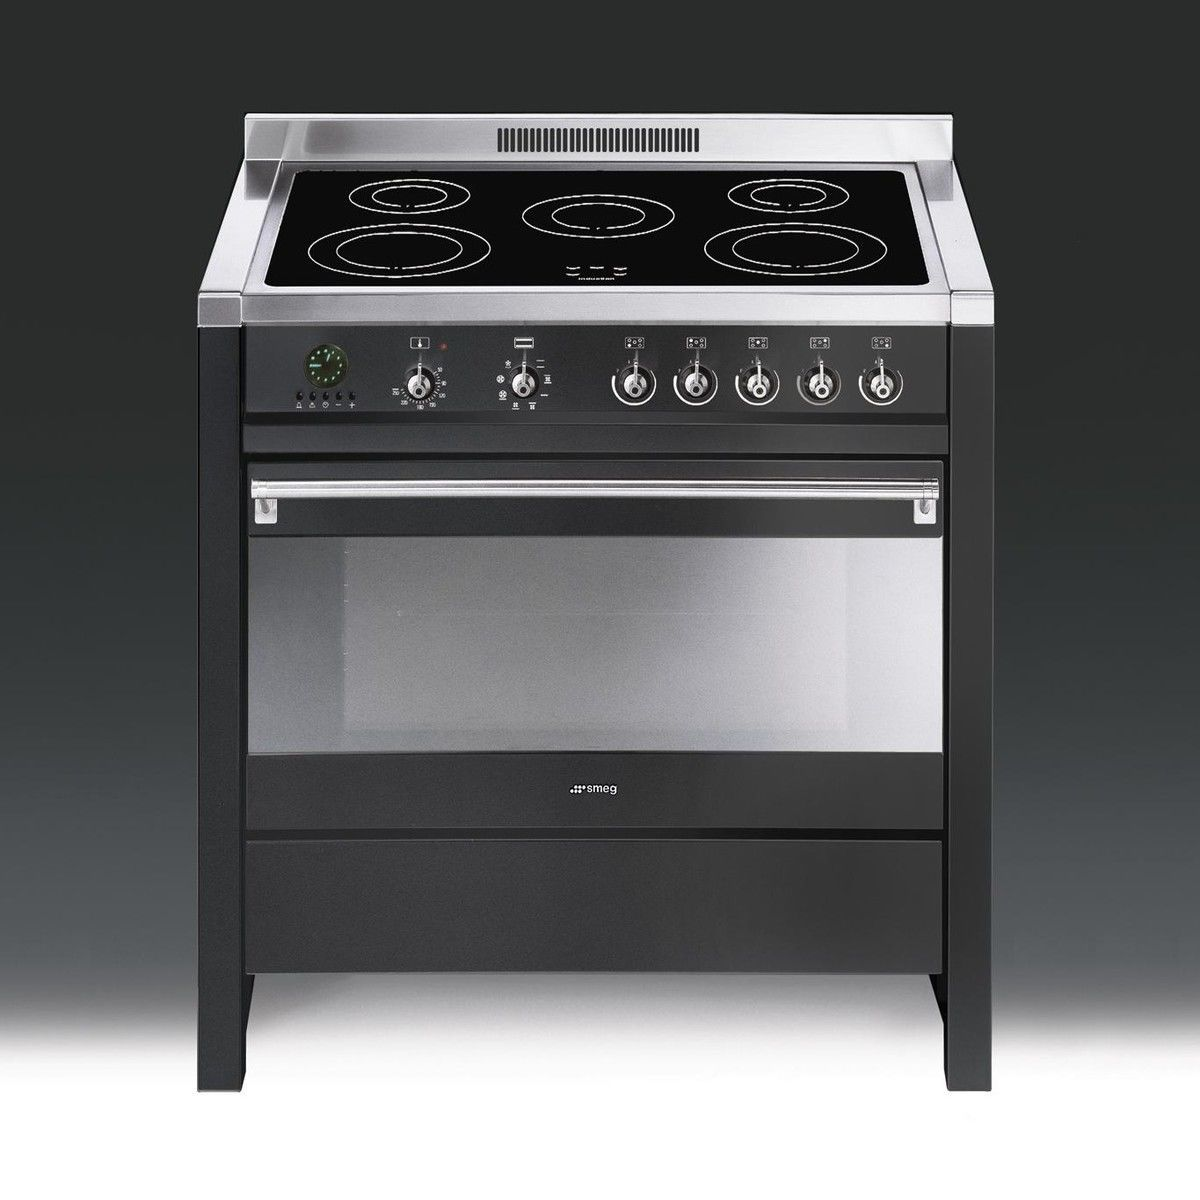 Cs19ida 7 piano de cuisson induction smeg - Piano induction smeg ...